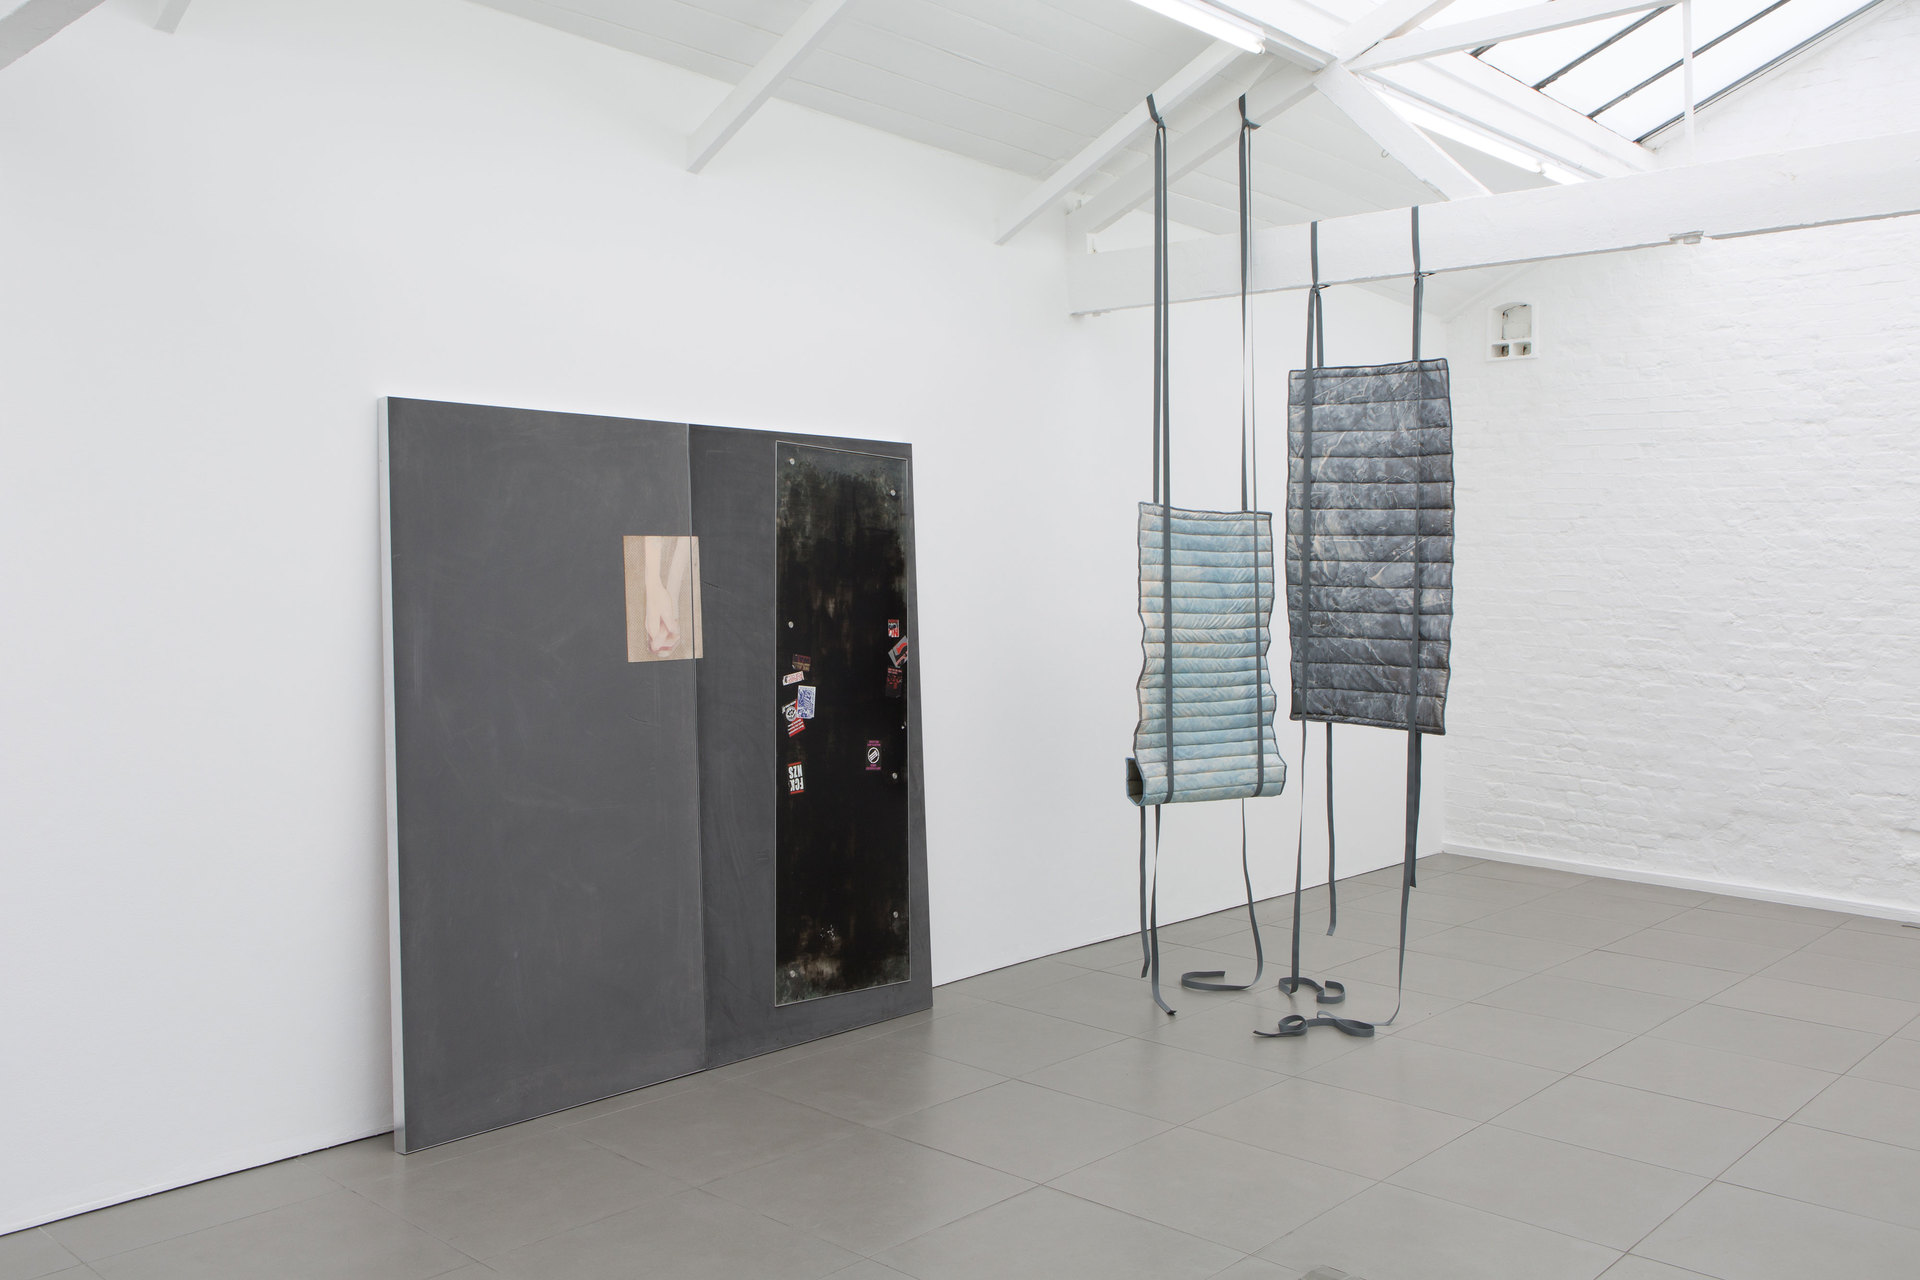 Installation view, landlords are not currently collecting rent in self-love, 2016, Cell Project Space